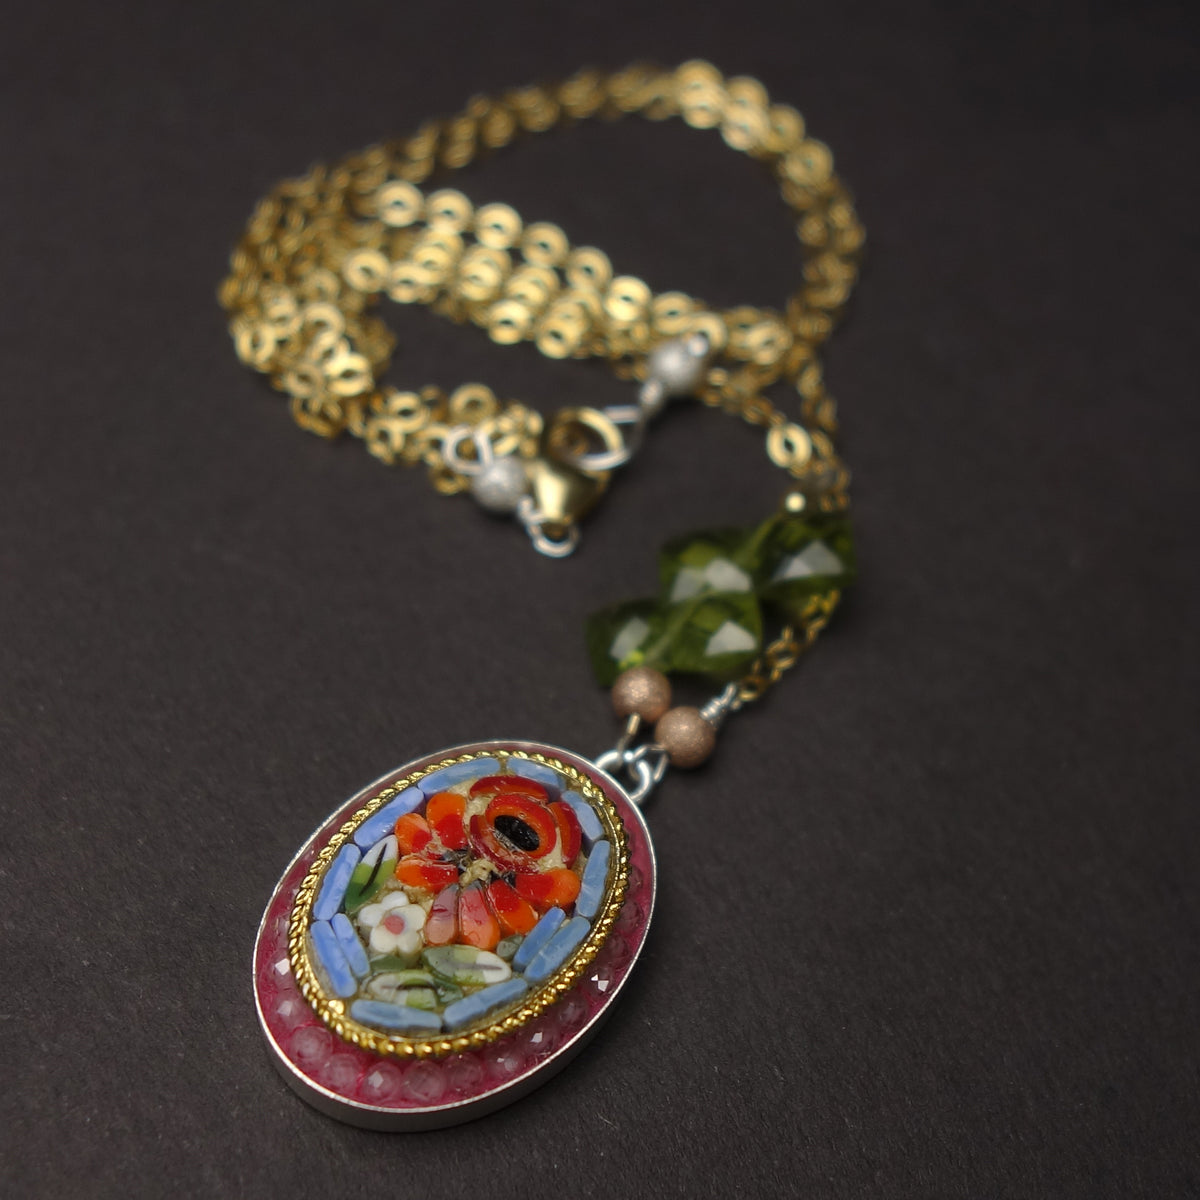 She Always Picked the Wildflowers: Ravenna mosaic with peridot, rose quartz